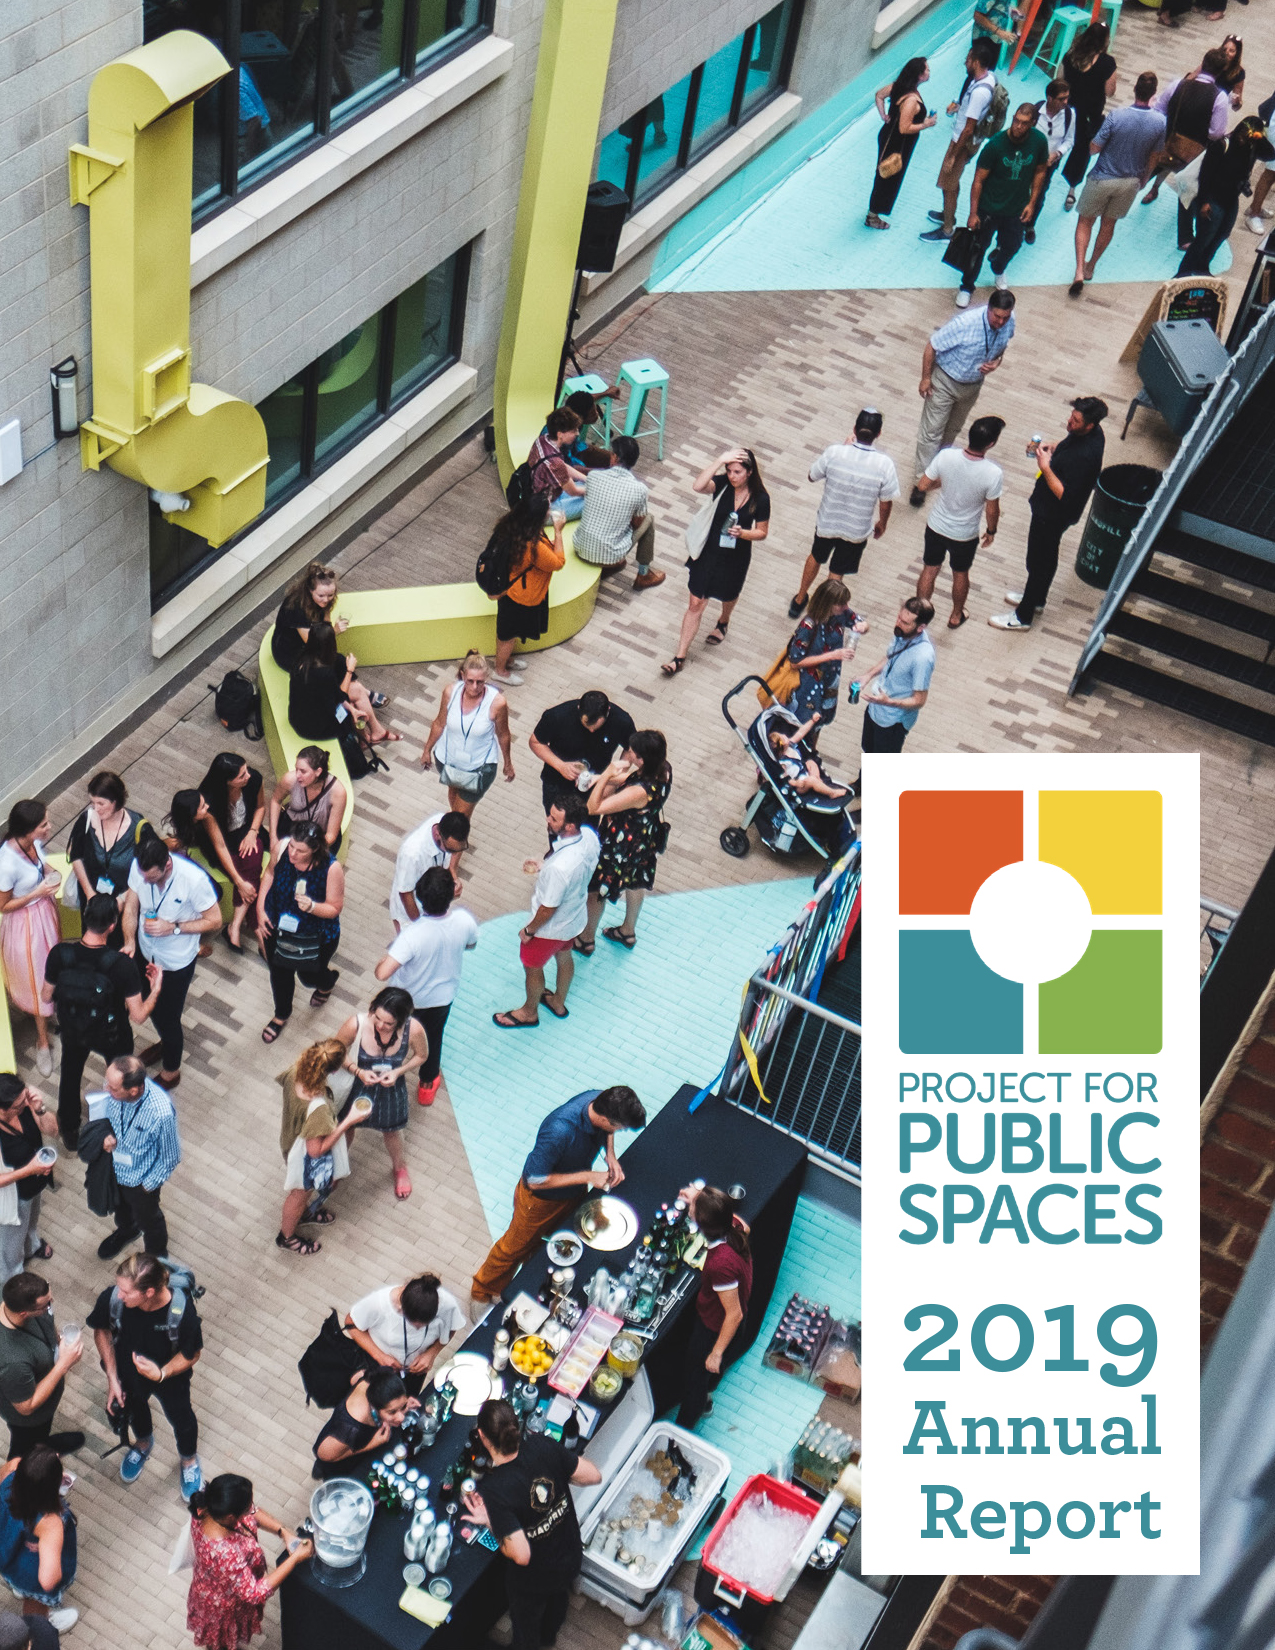 Project for Public Spaces 2019 Annual Report